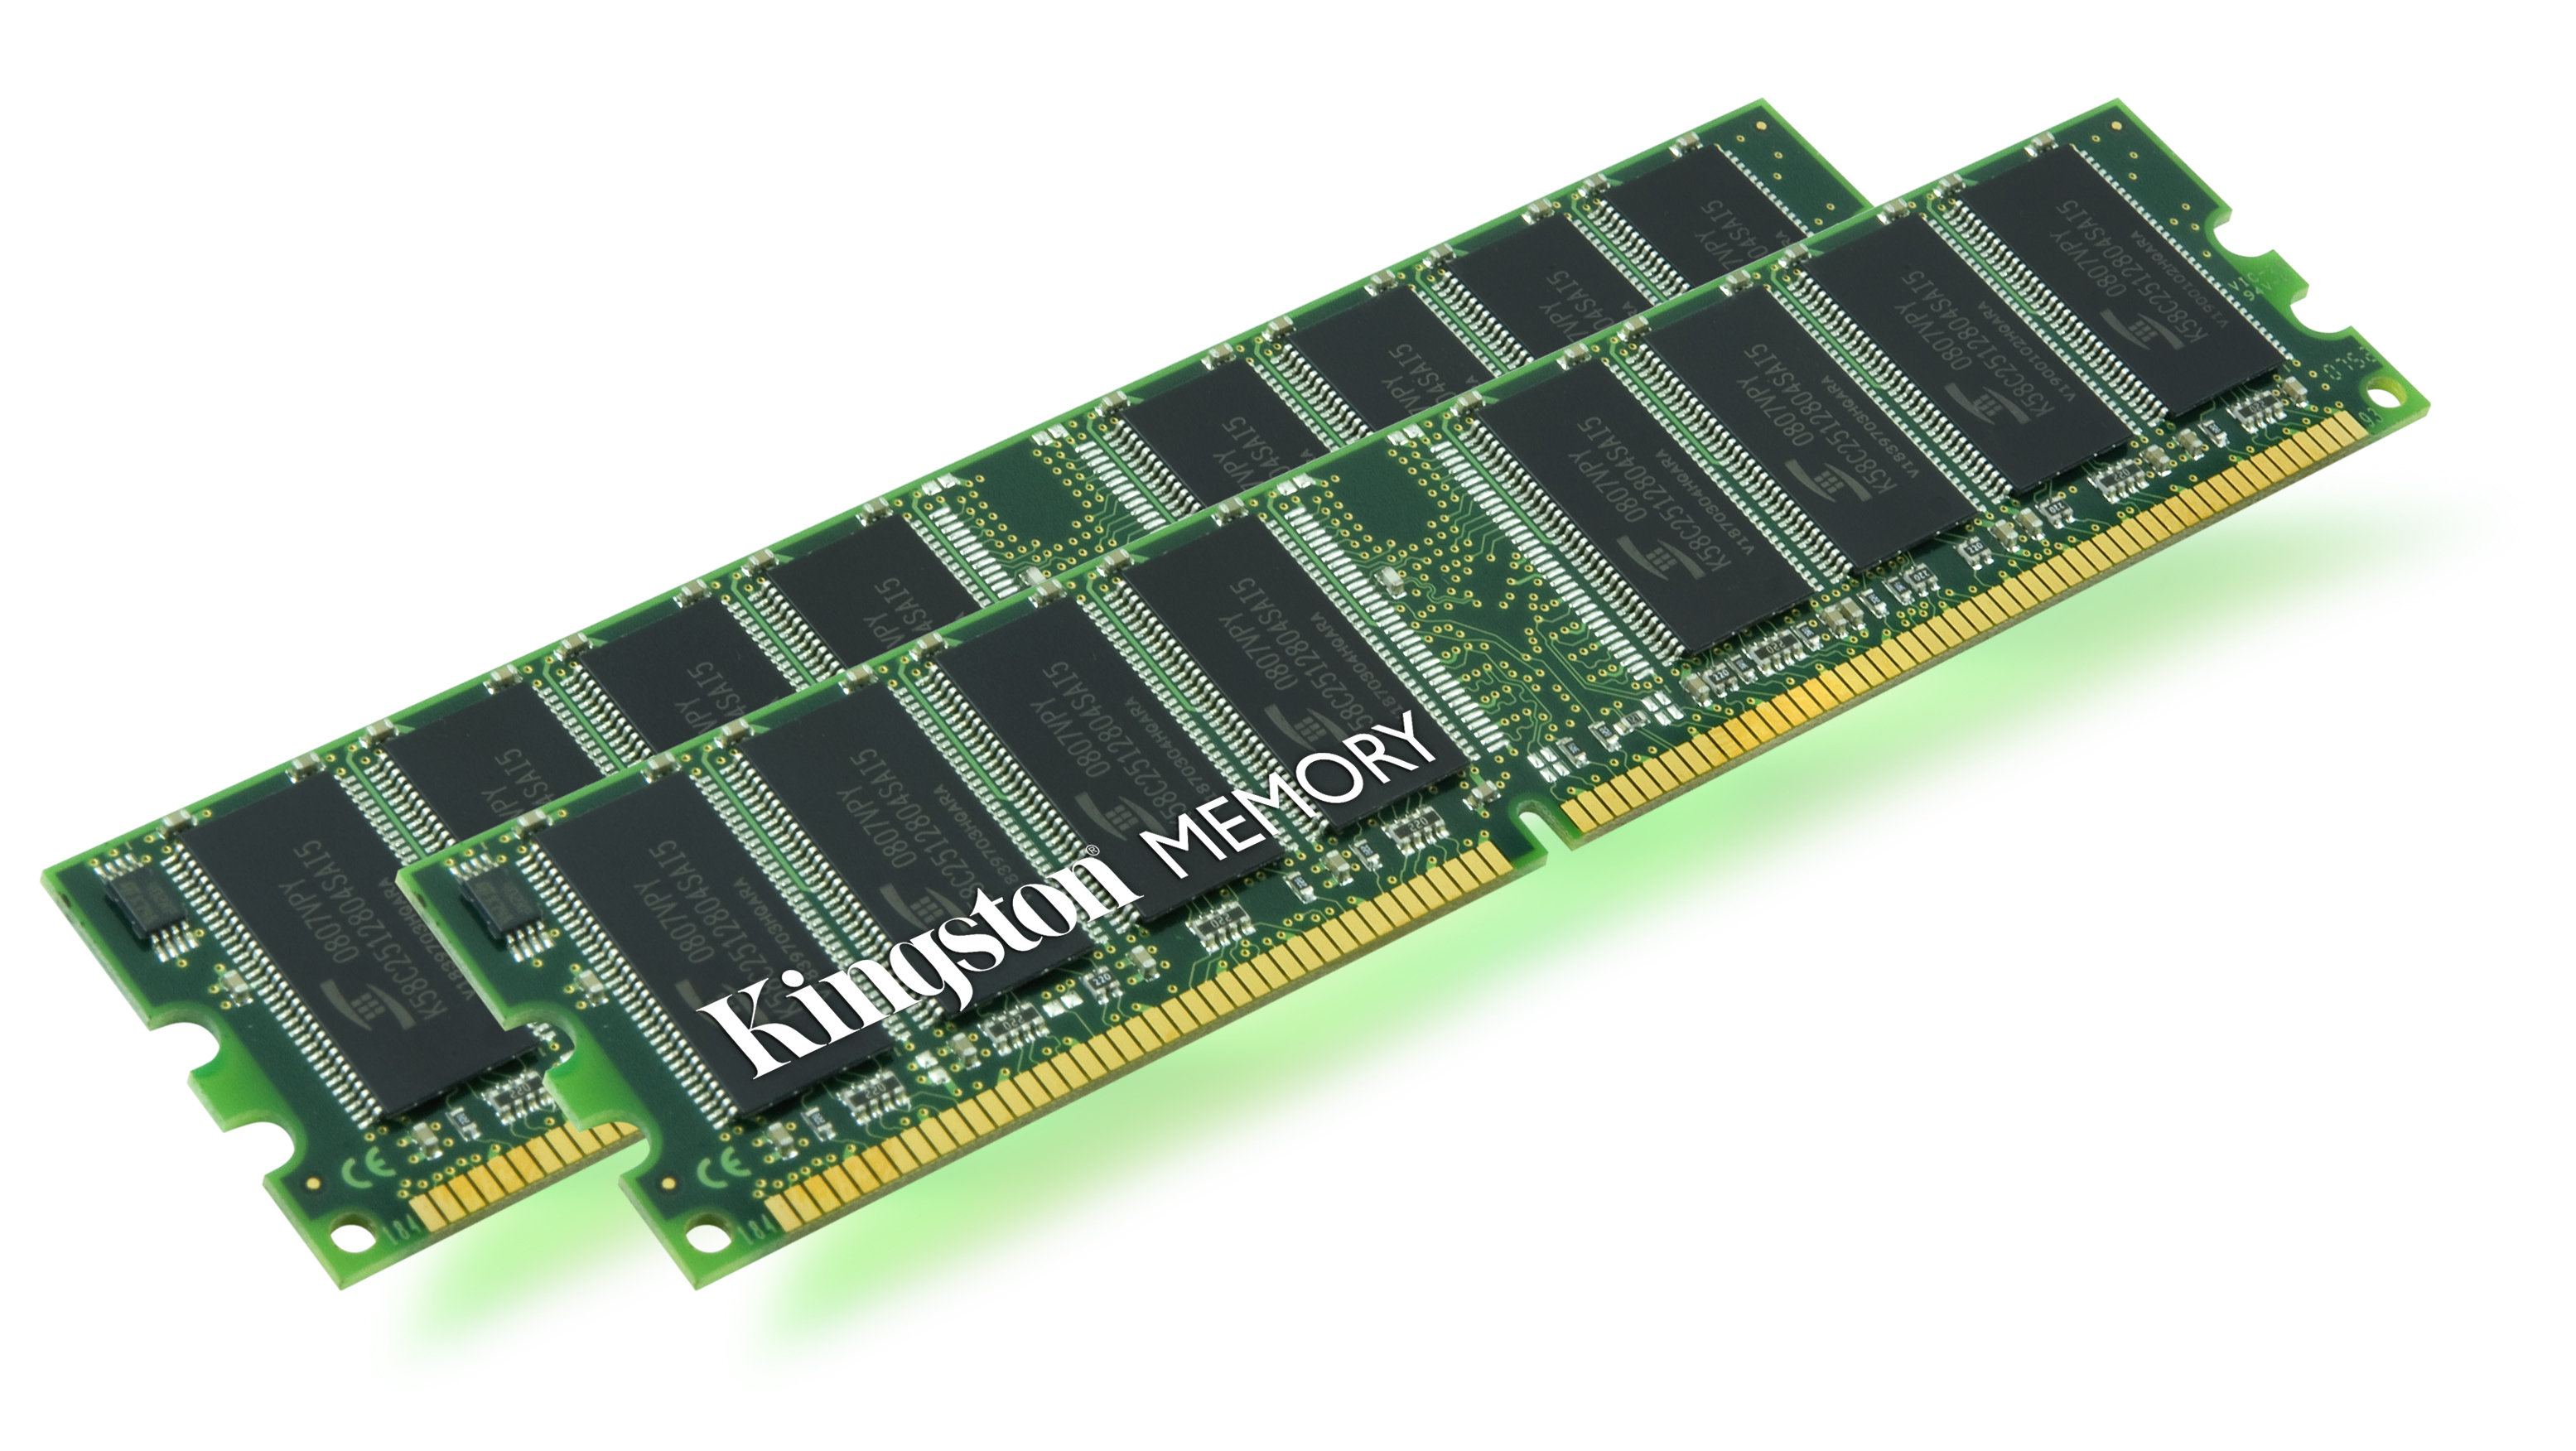 Kingston HP/Compaq Desktop PC 2GB DDR2-800 CL6 Module - KTH-XW4400C6/2G